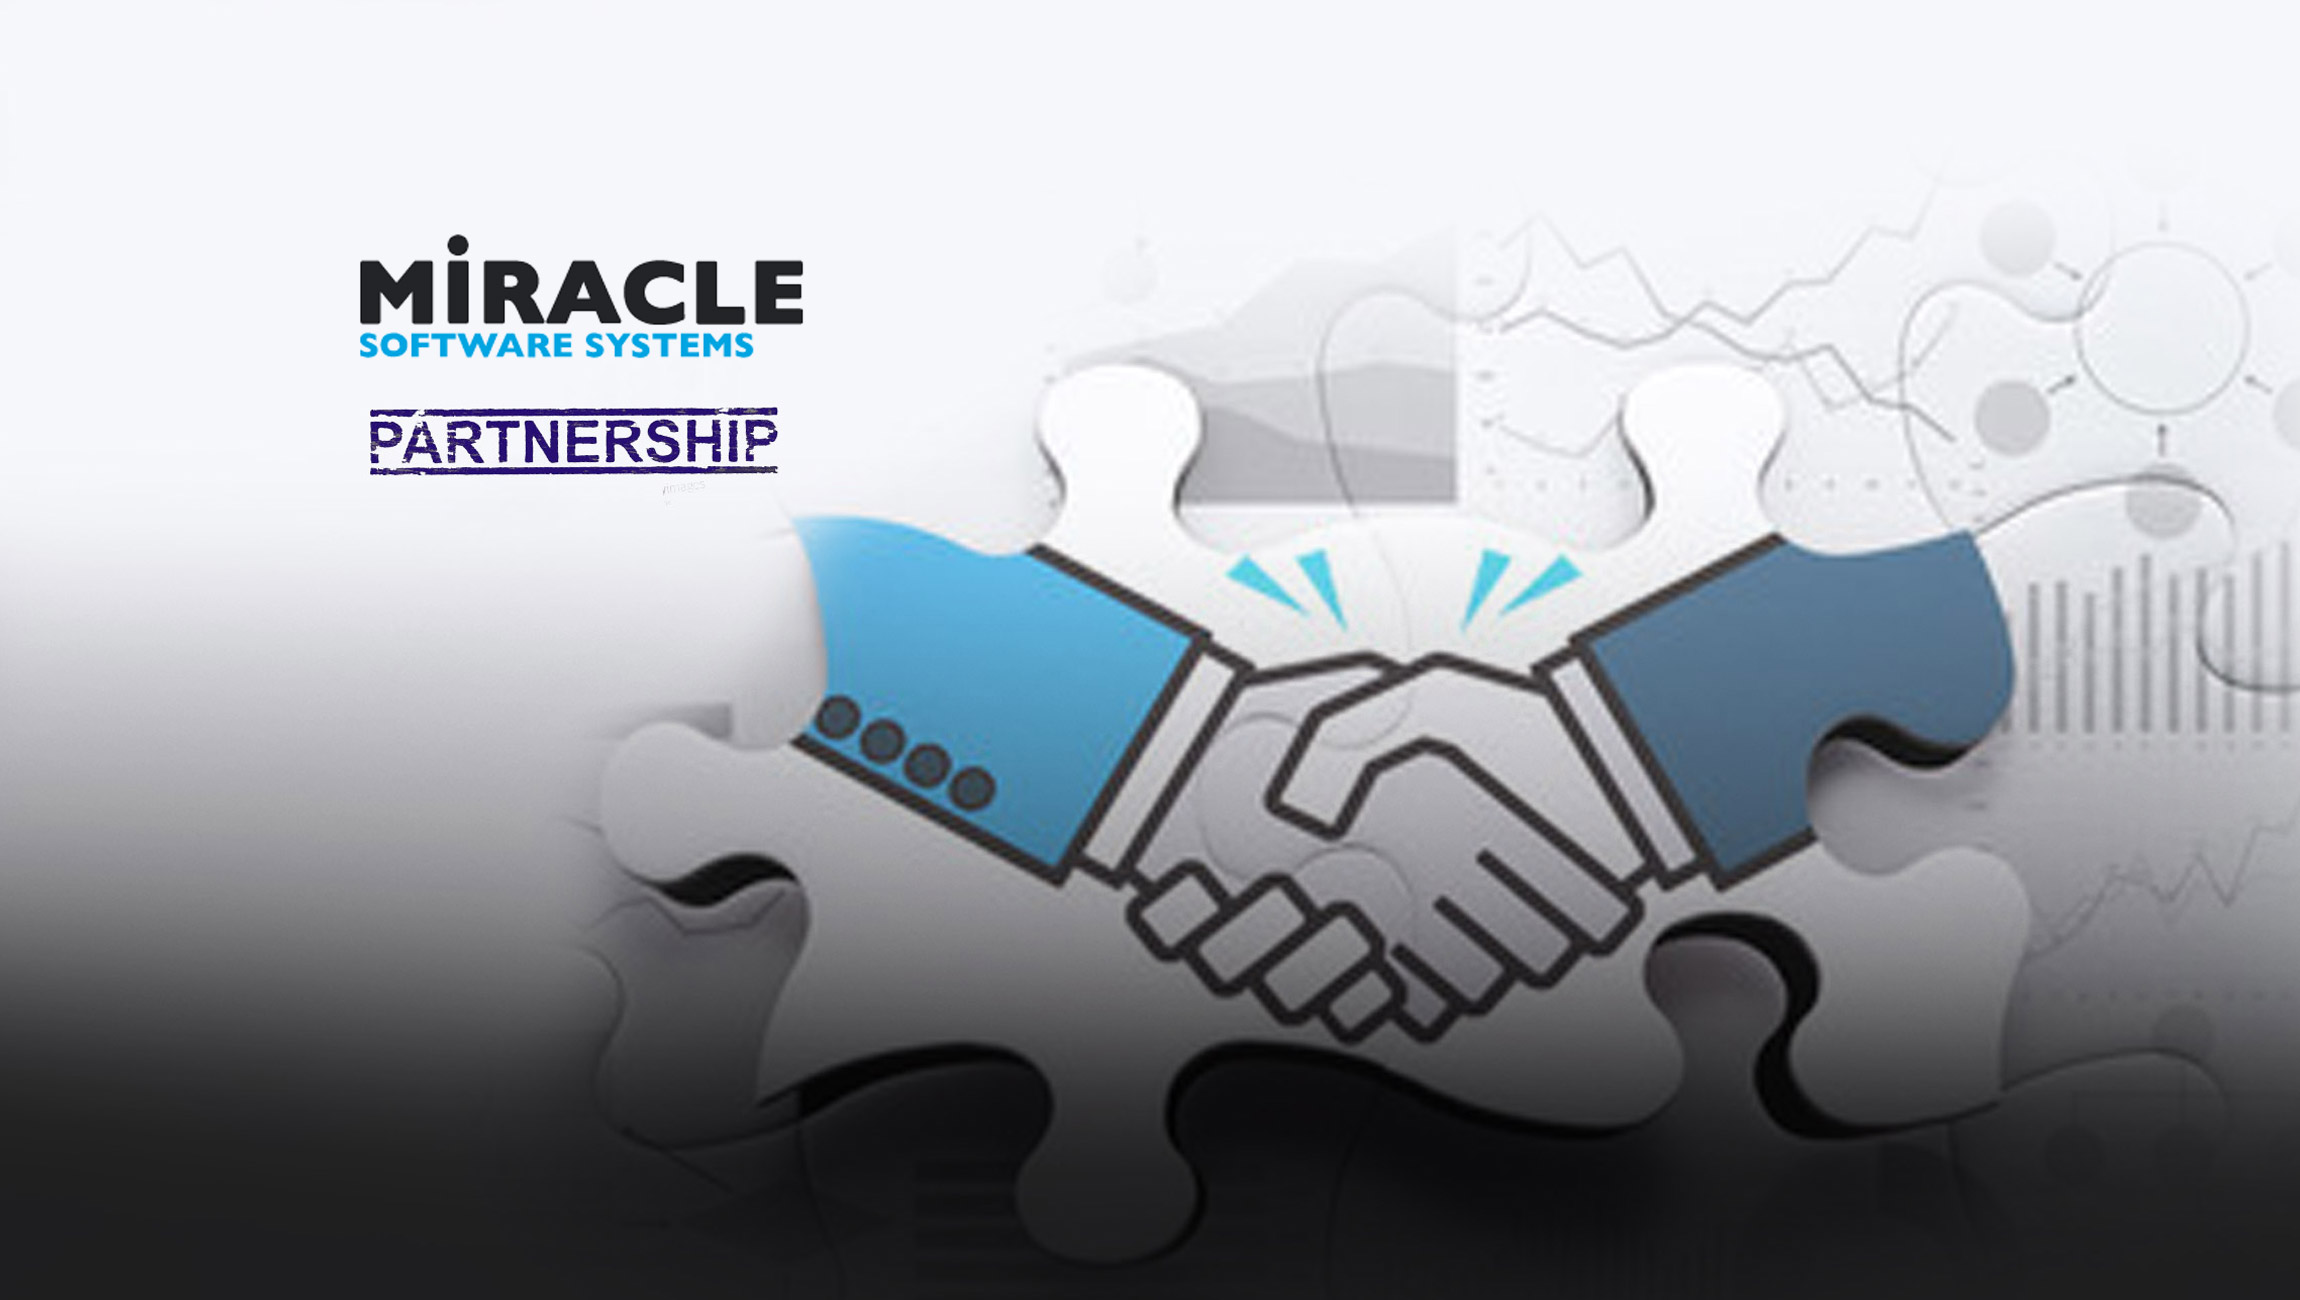 Miracle Named Advanced Partner with Amazon Web Services